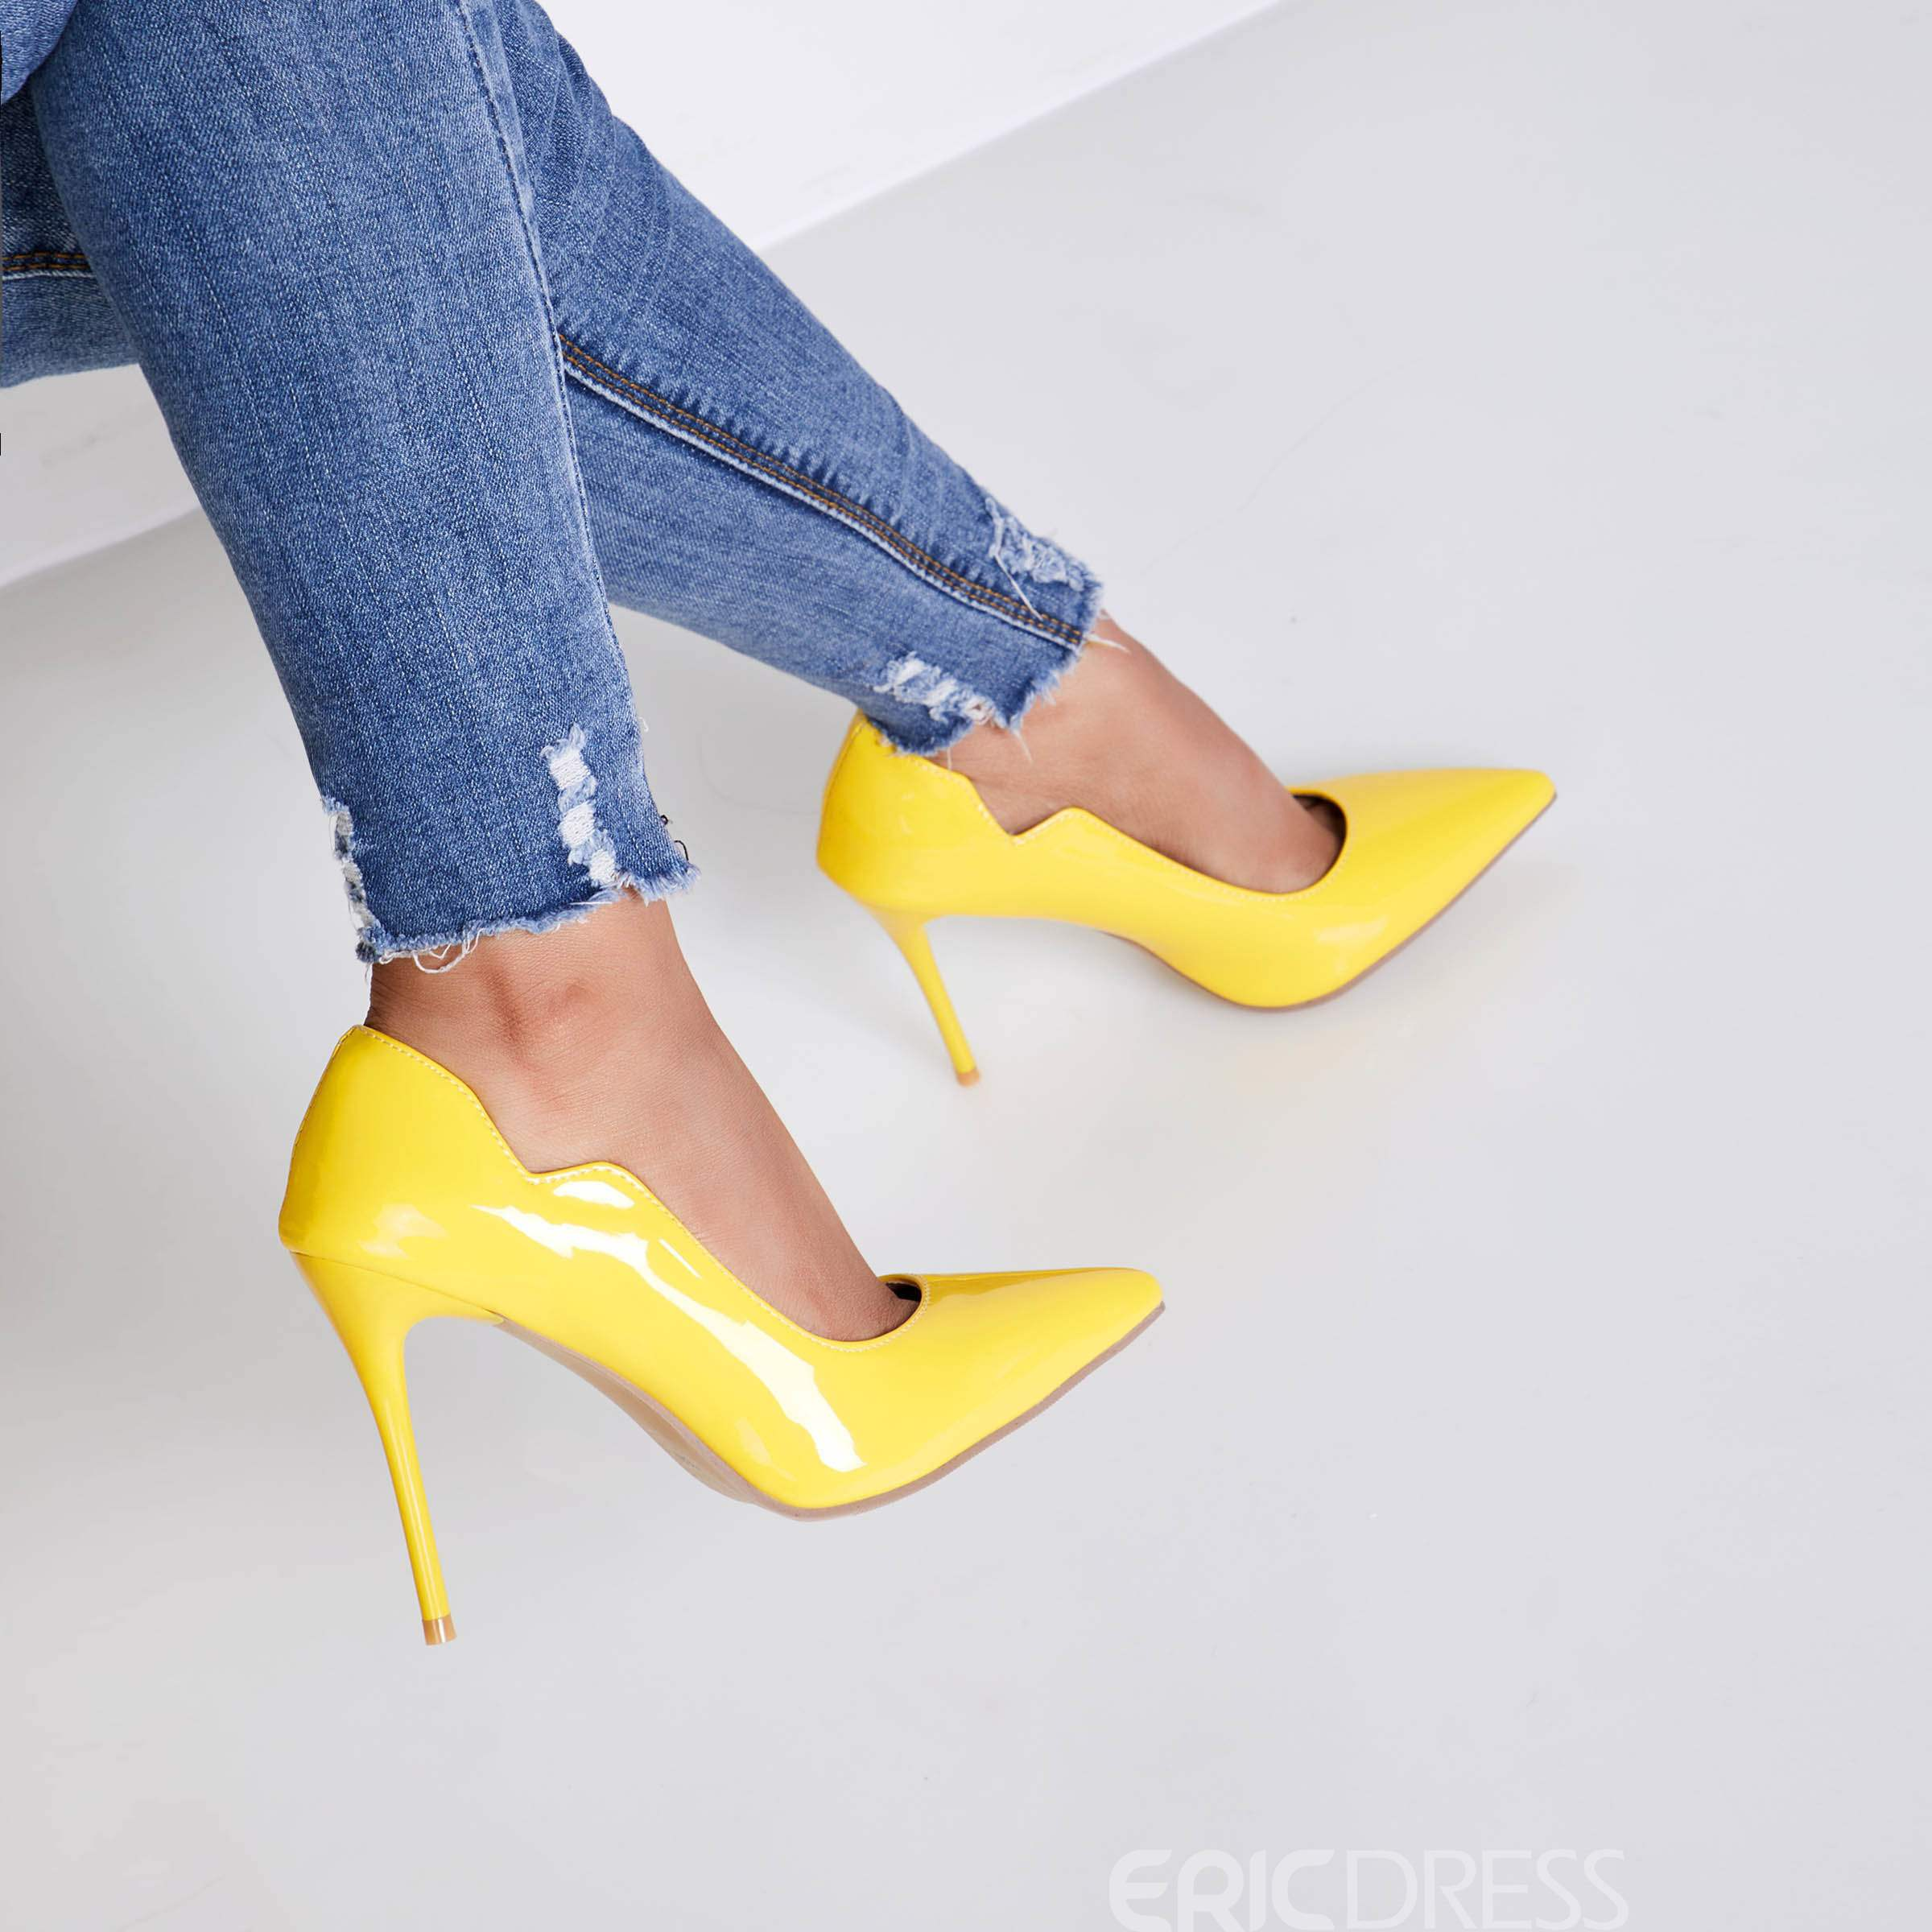 Ericdress Special Bright Point Toe Pumps